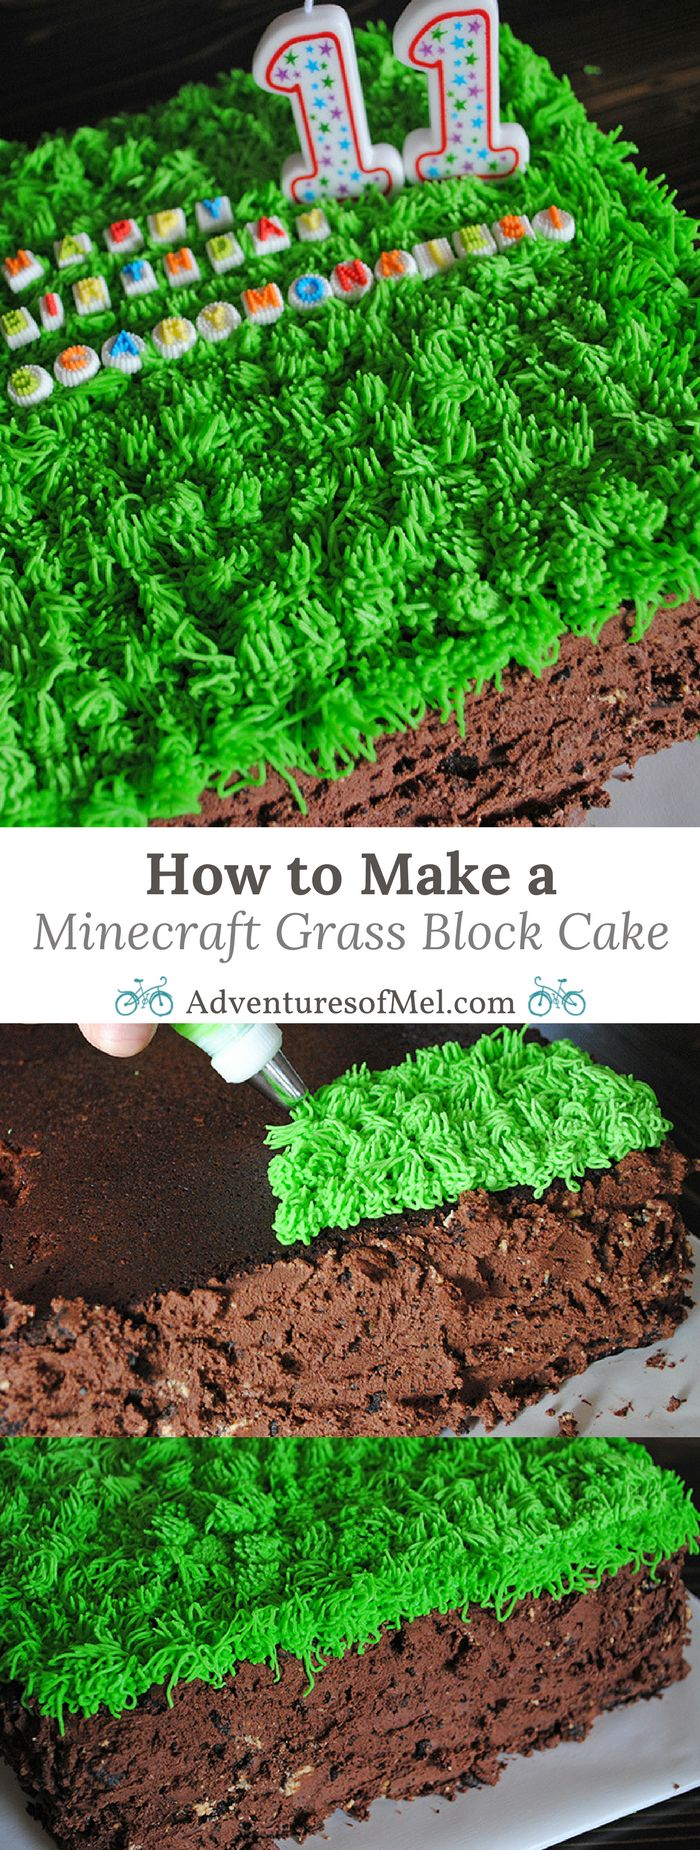 Do your kids love Minecraft? Print the supply list and instructions for how to make a Minecraft Grass Block Cake. It makes a fun and festive birthday cake or a great conversation piece for a Minecraft party!